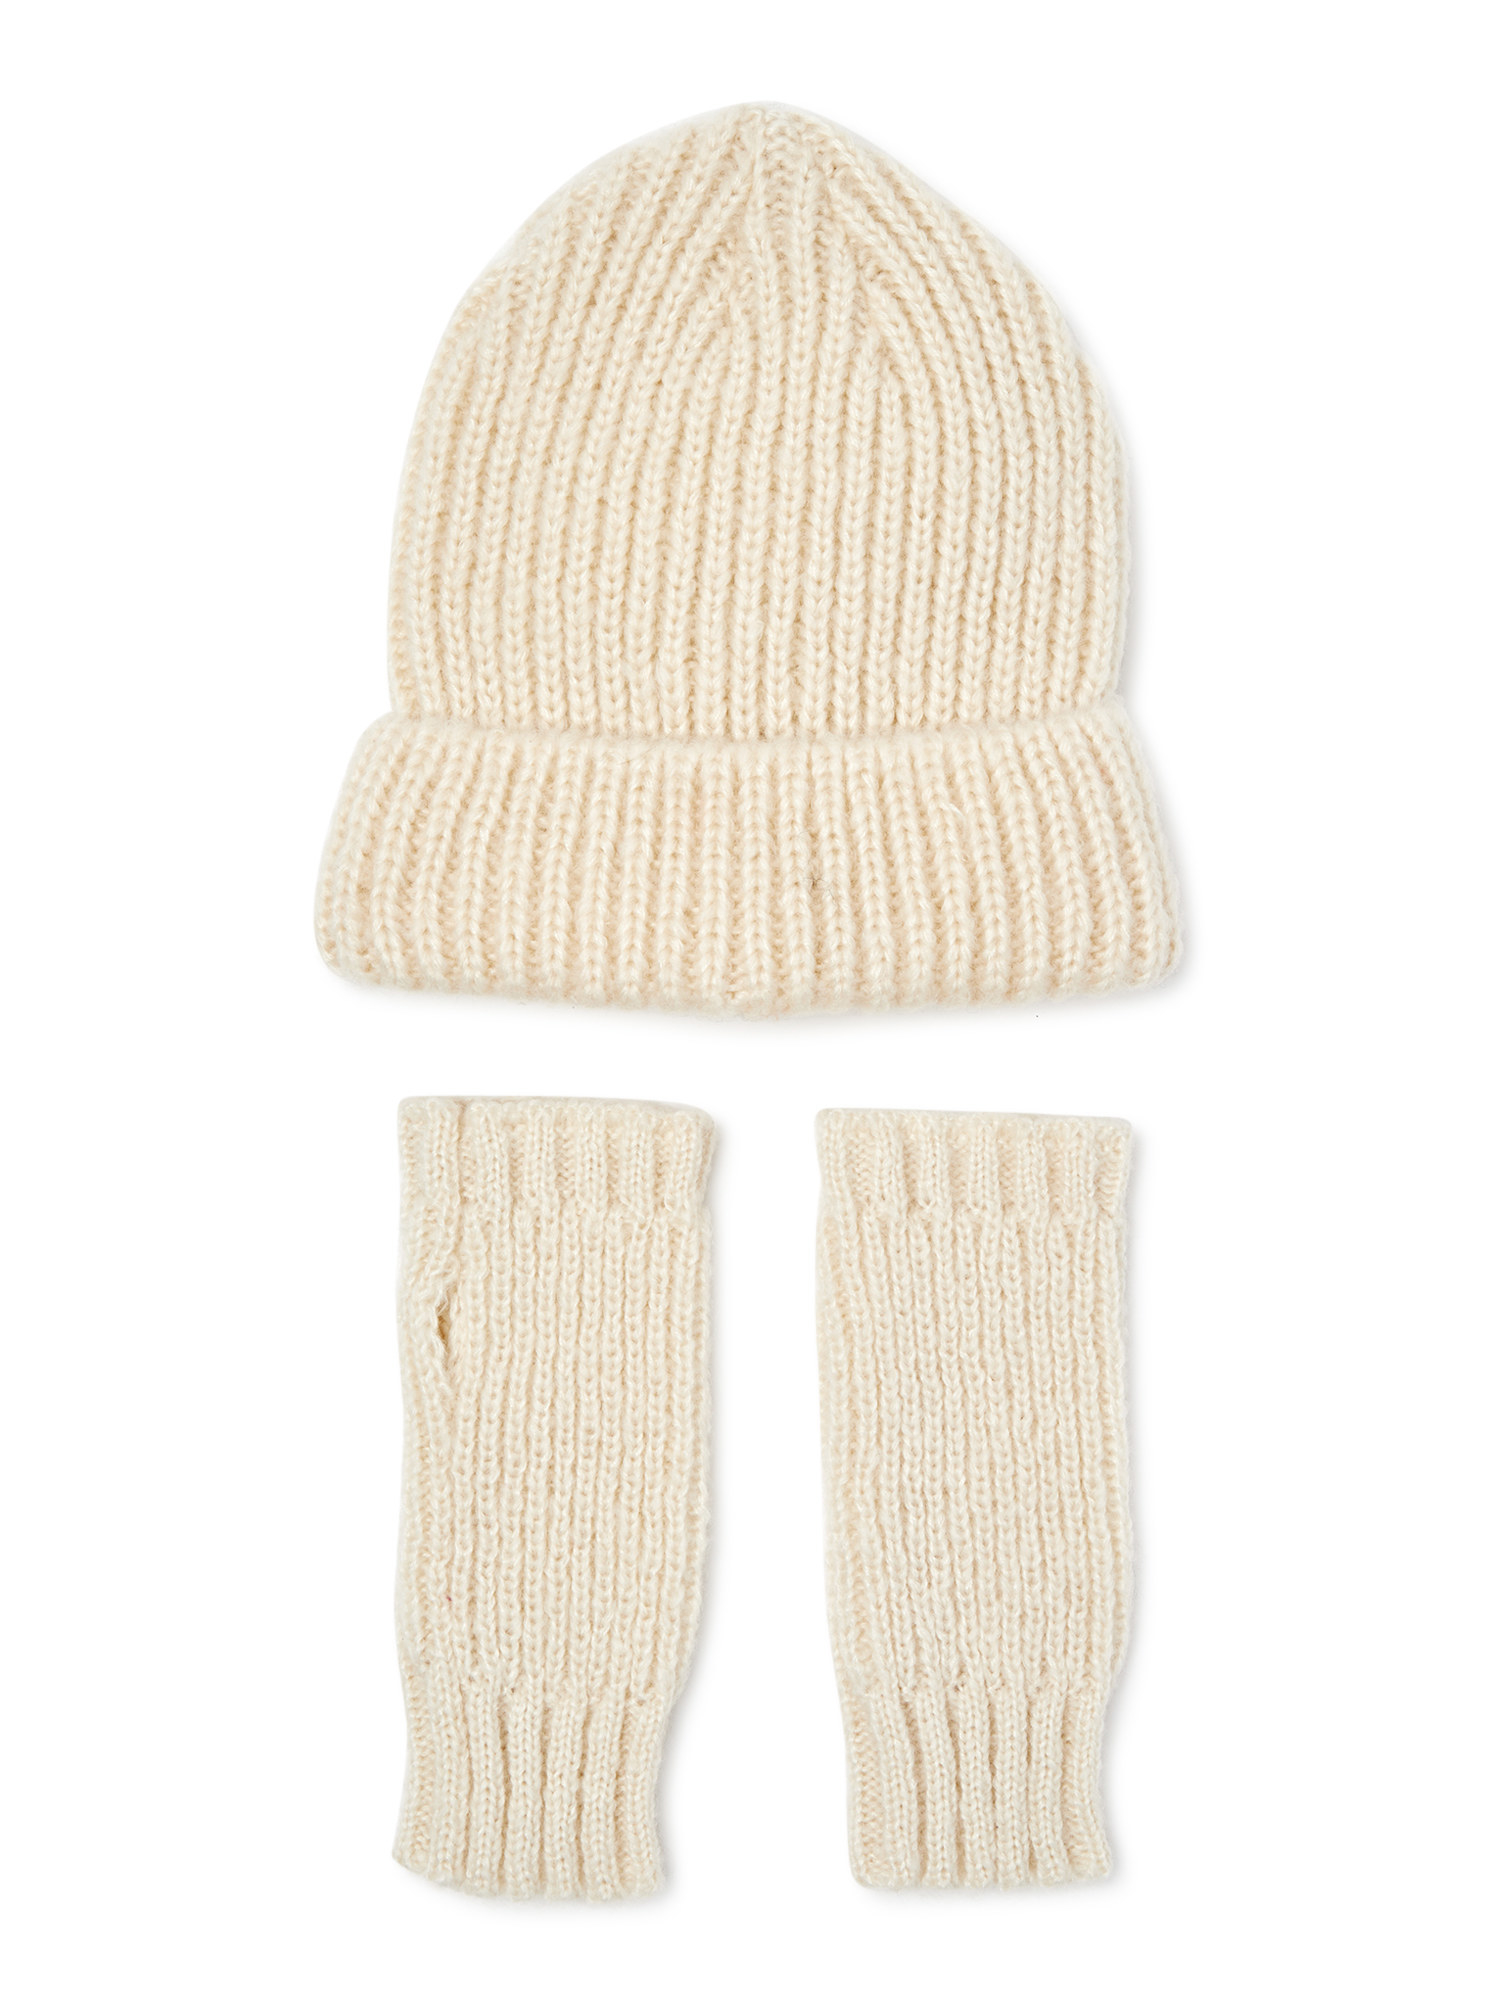 A cream hat and fingerless mits